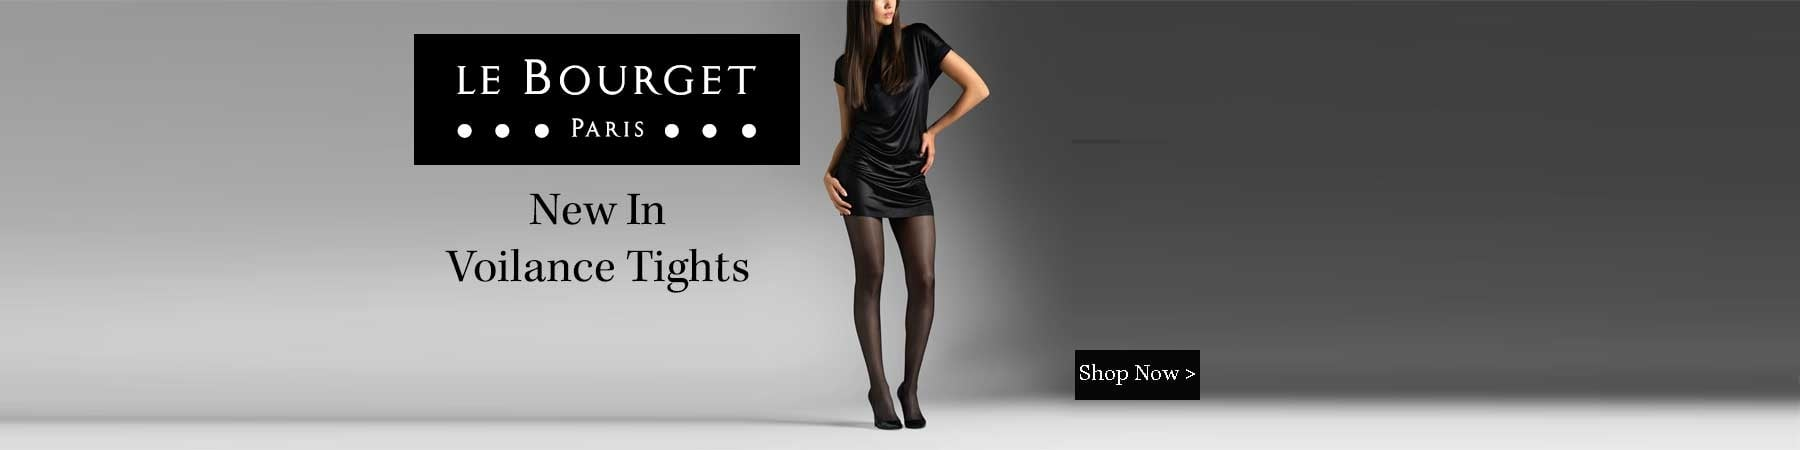 Le Bourget Voilance Tights